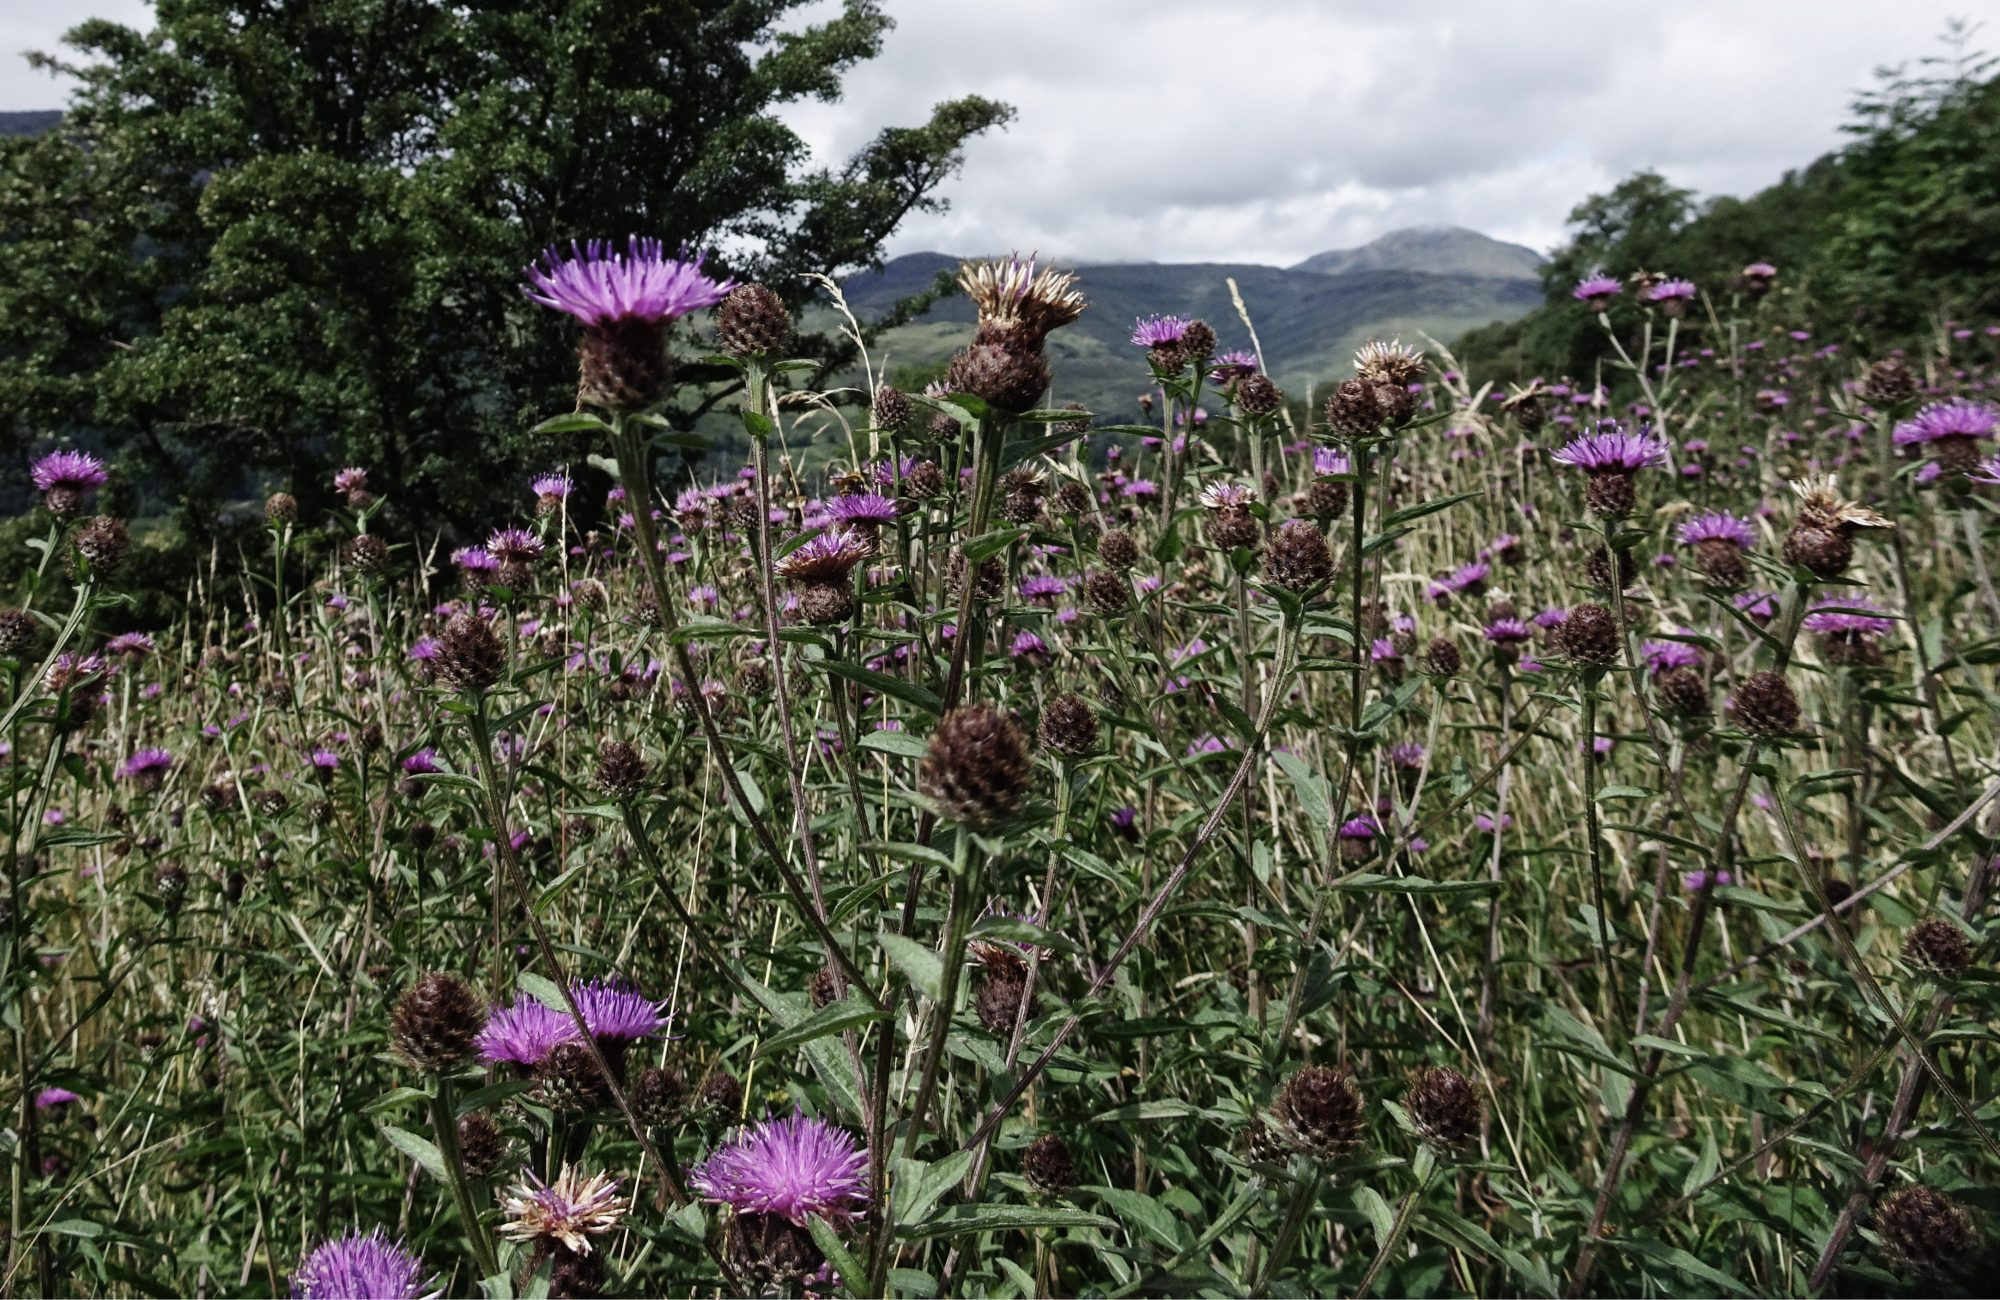 Die Distel, Nationalblume Schottlands , West Highland Way, Schottland, Wanderung, Weitwandern, Trekking, Highlands